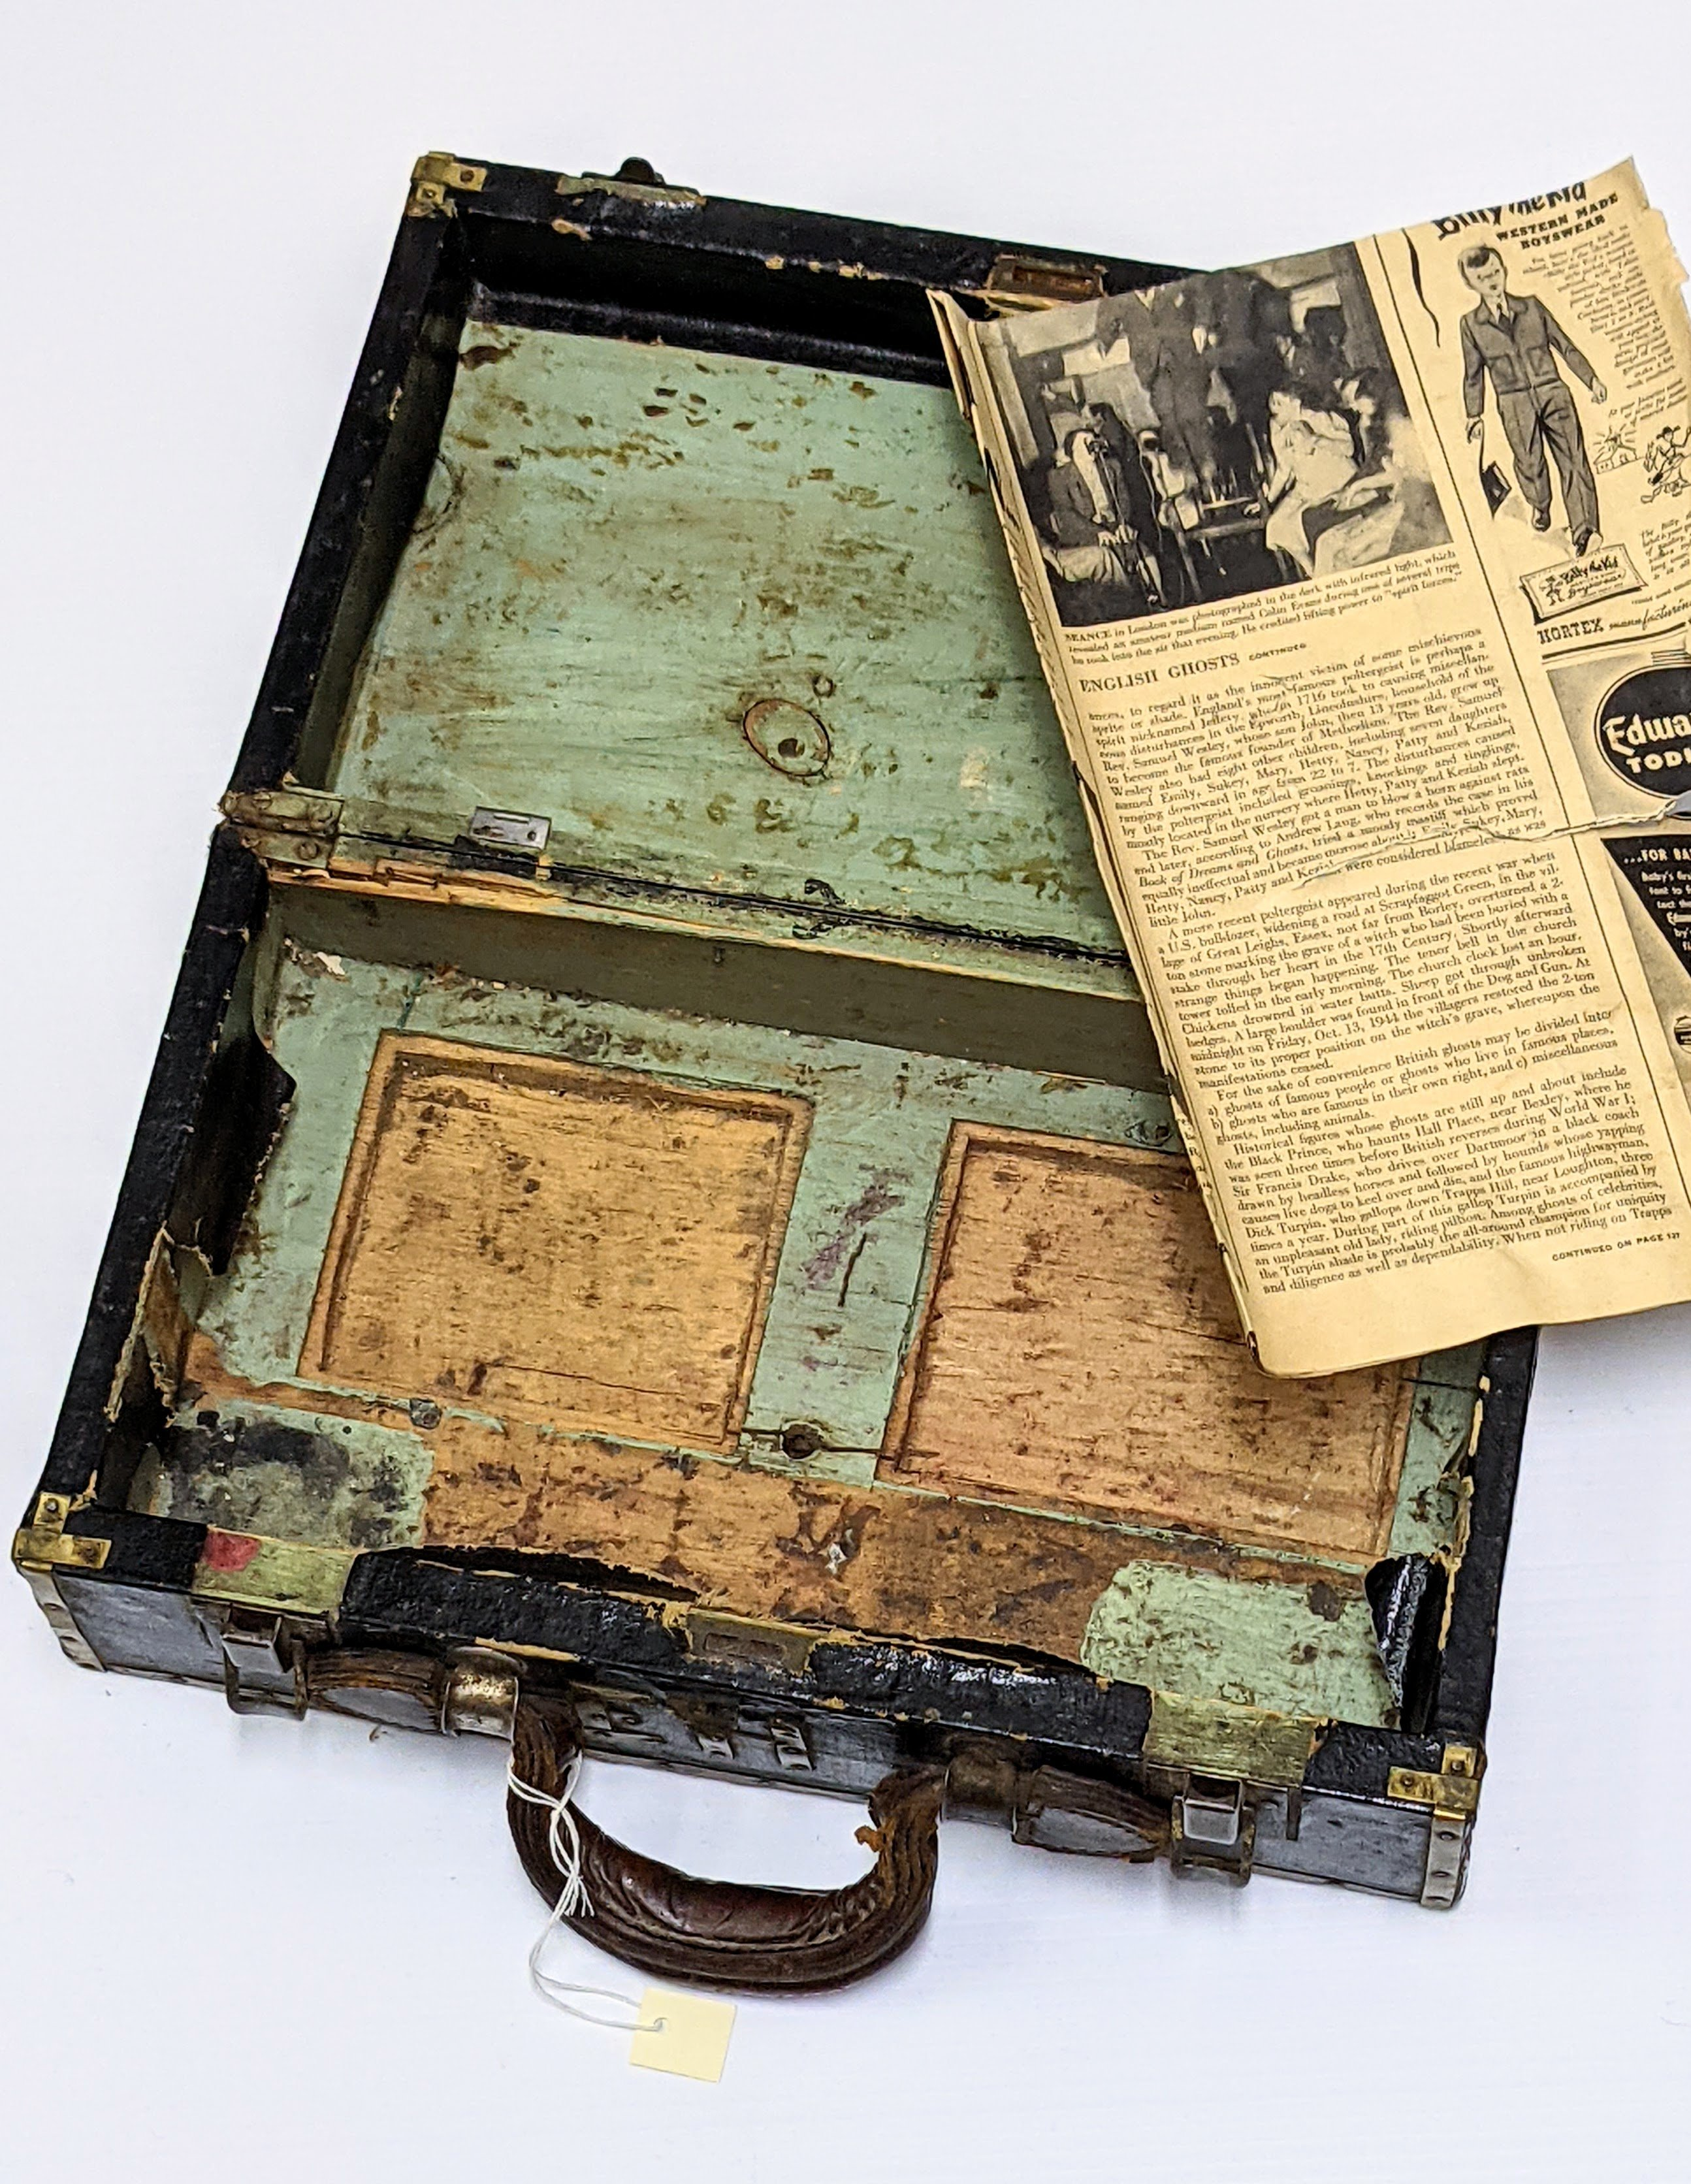 """We believe this to be a protective case. For what exactly we are not sure. It is a bit large for jewelry, though does have the Initials """"EH"""" stamped on the front indicating it to be a personal item. The paint markings, hollowed base, and extra hinges indicate secret compartments or other elements no longer present  The inconsistent work on of the trim and fabric covering indicate it was homemade or repurposed from it's original use. The newspaper was found inside as a bottom and gives us a ball park estimate on the age of the artifact. The paper comes from the September 22, 1947 issue of Life Magazine!  If you have any insight on its purpose - please let us know!  08/08/2021 2007.61.20 / Tourangeau, Martha & Harvey"""